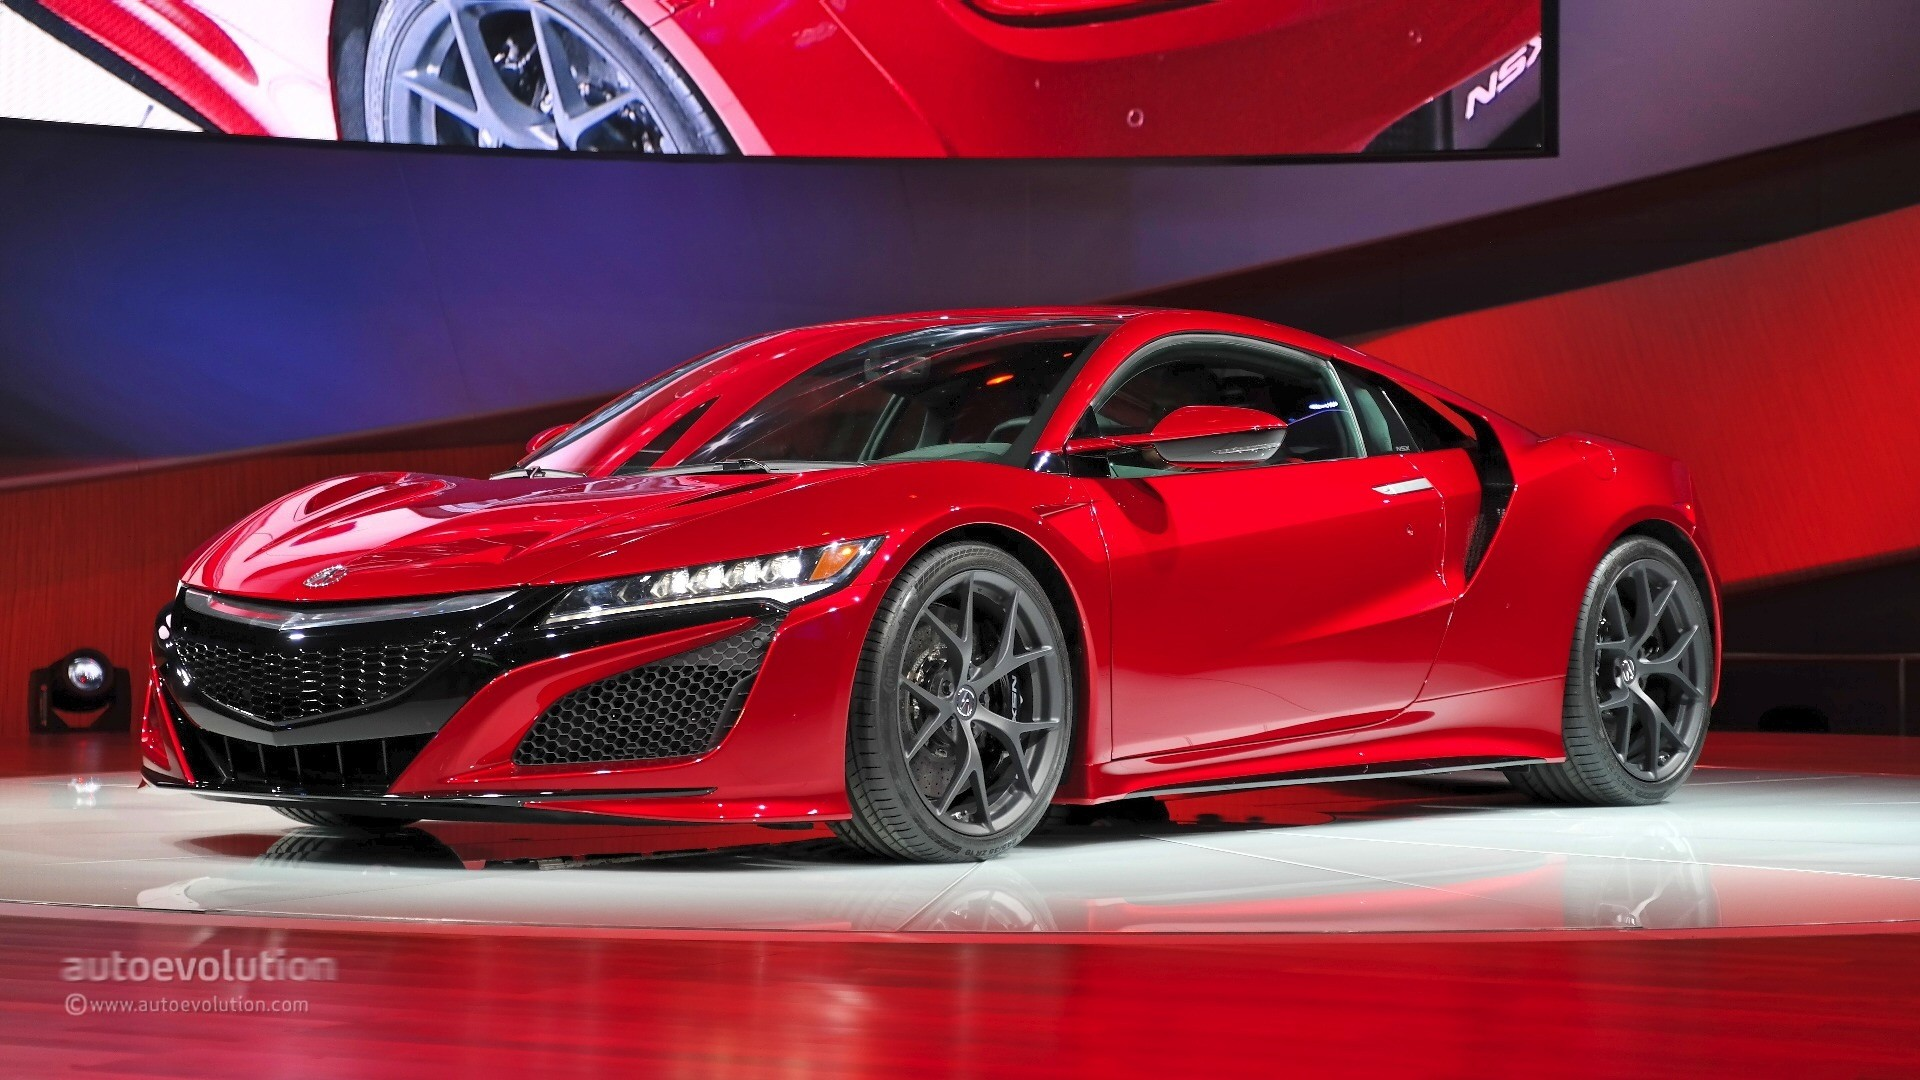 2015 acura nsx price msrp review autos post. Black Bedroom Furniture Sets. Home Design Ideas